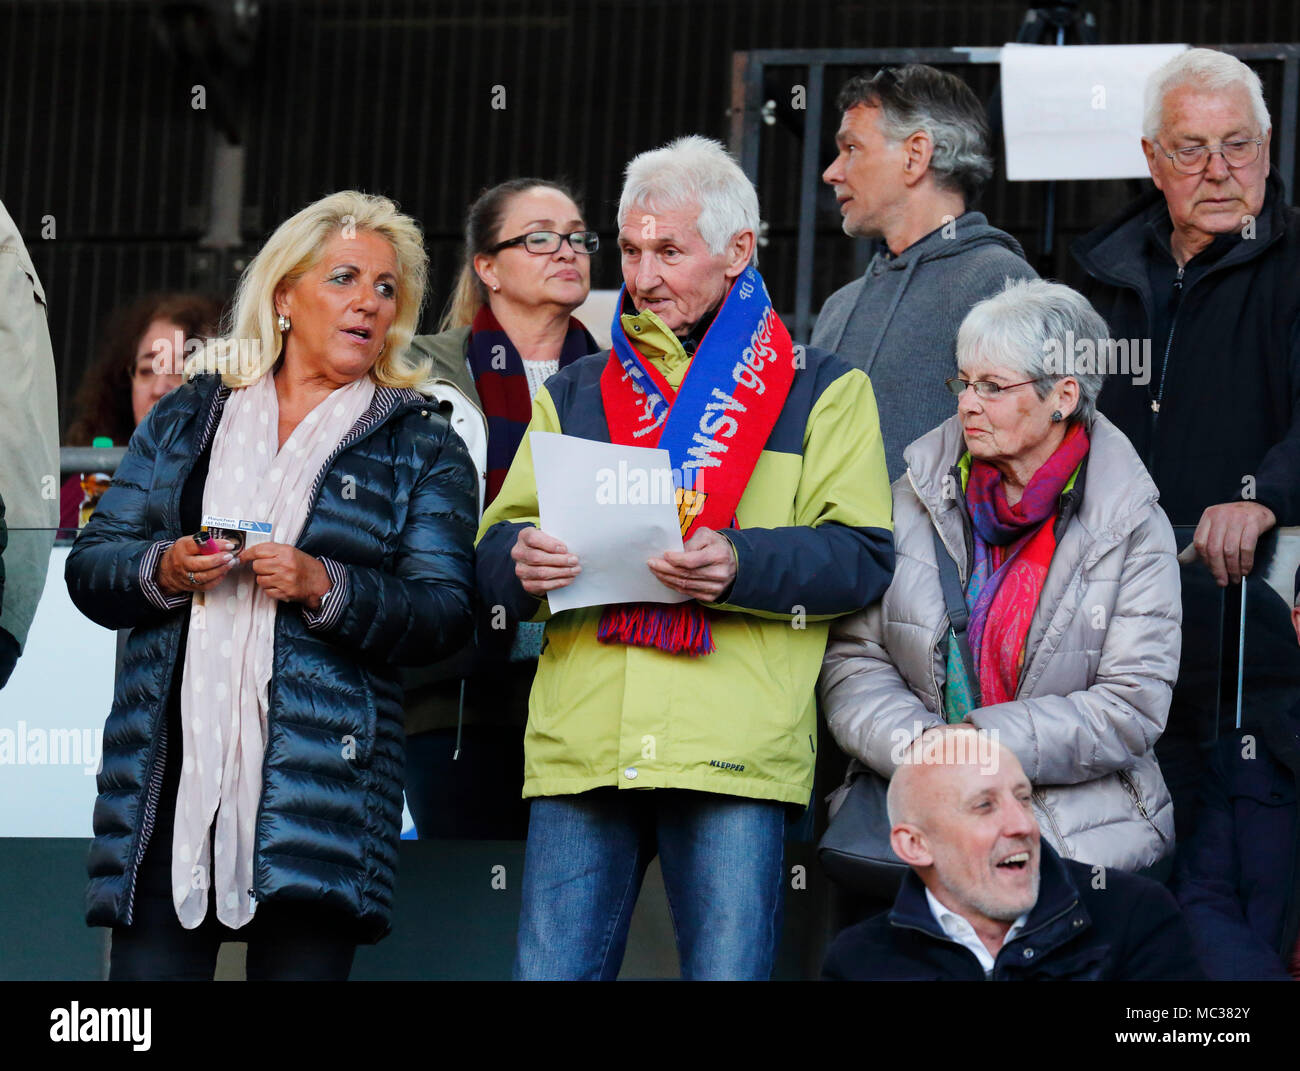 sports, football, Regional League West, 2017/2018, Wuppertaler SV vs Rot Weiss Essen 3:1, Guenter Proepper (3.f.l.) on the stand, former professional player off Wuppertaler SV - Stock Image